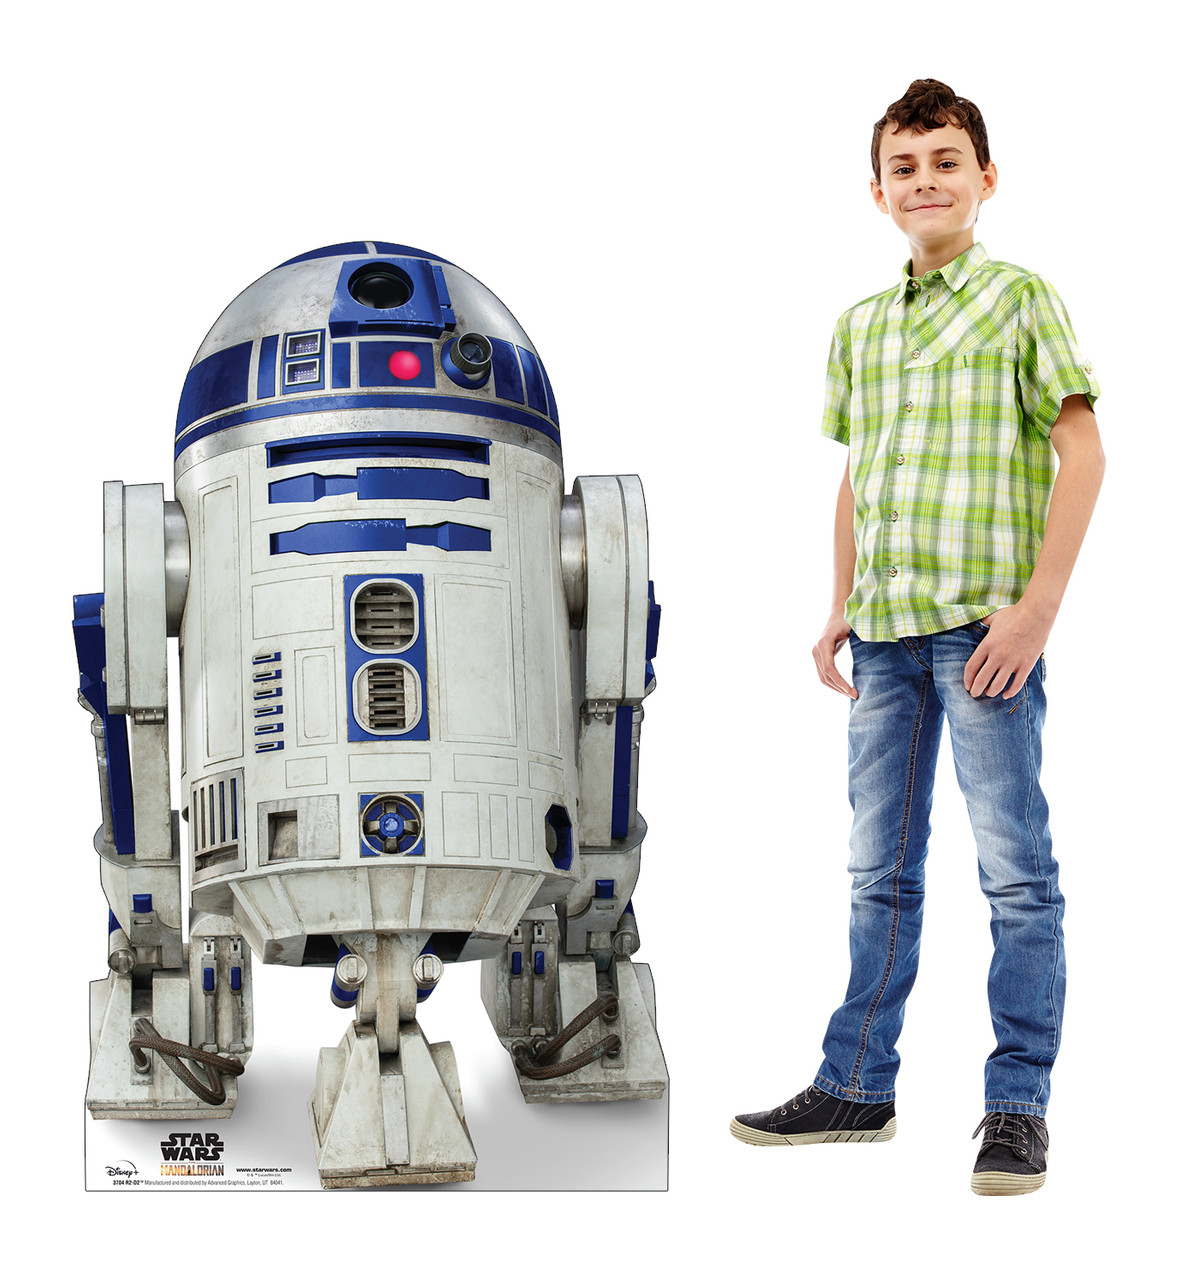 Life-size cardboard standee of R2-D2 from the Mandalorian season 2 with model.